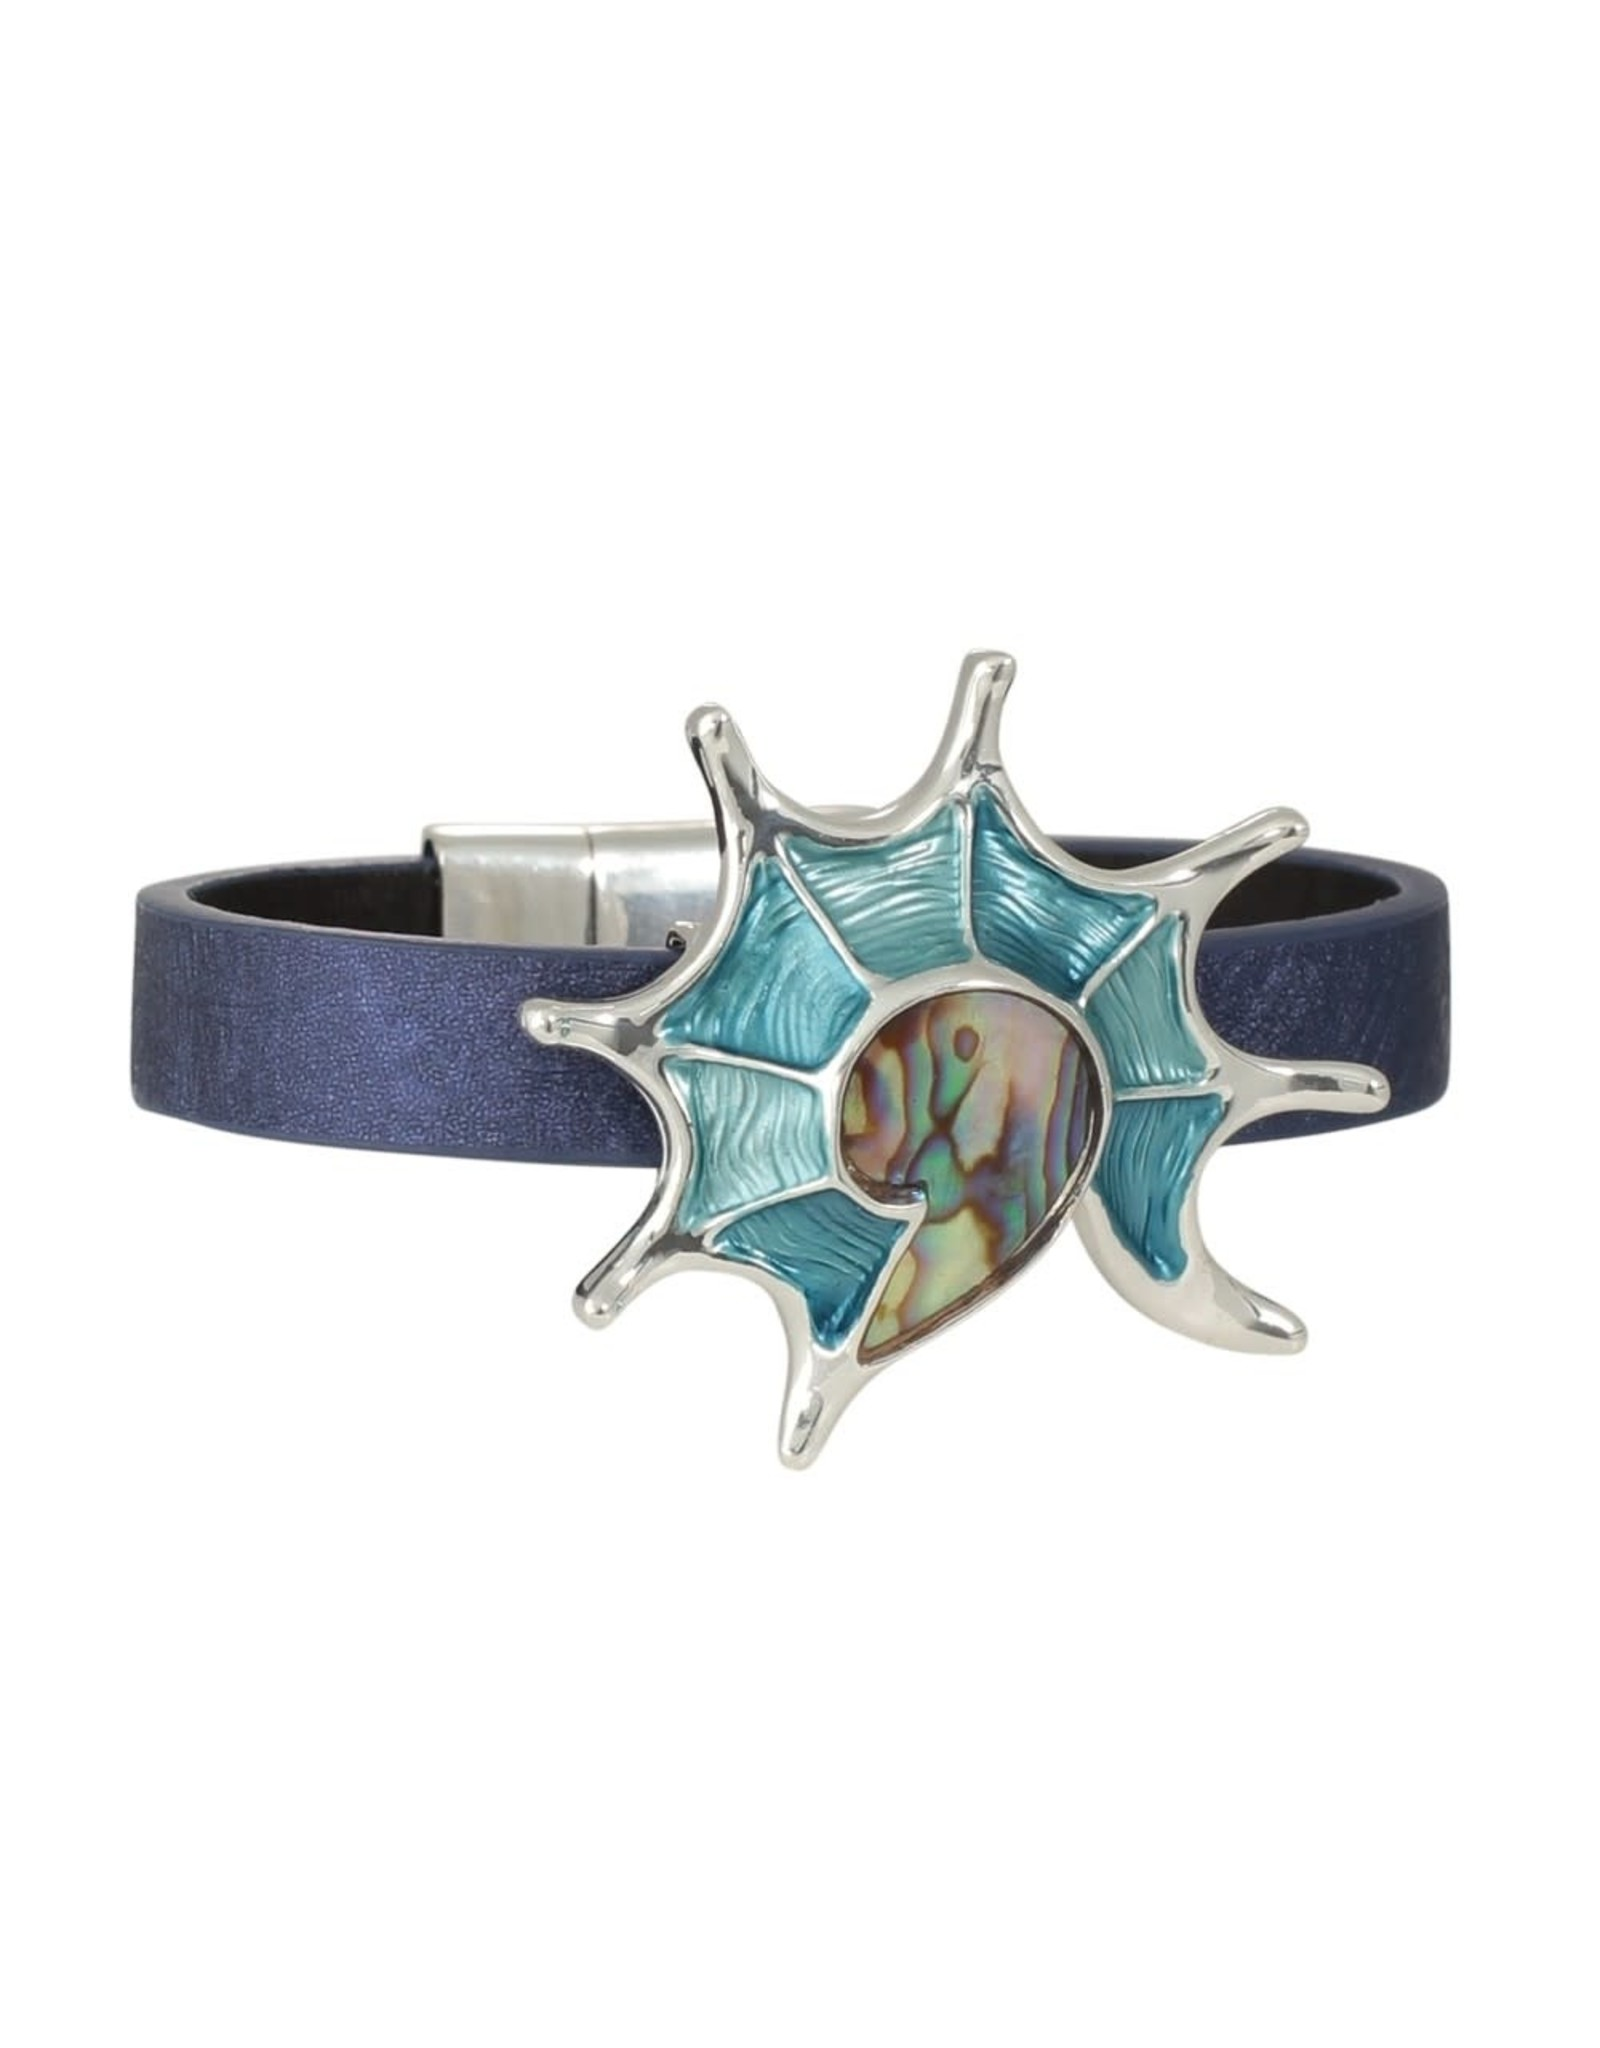 Periwinkle by Barlow Abalone Enamel Inlay Shell Blue Faux Leather Band Bracelet